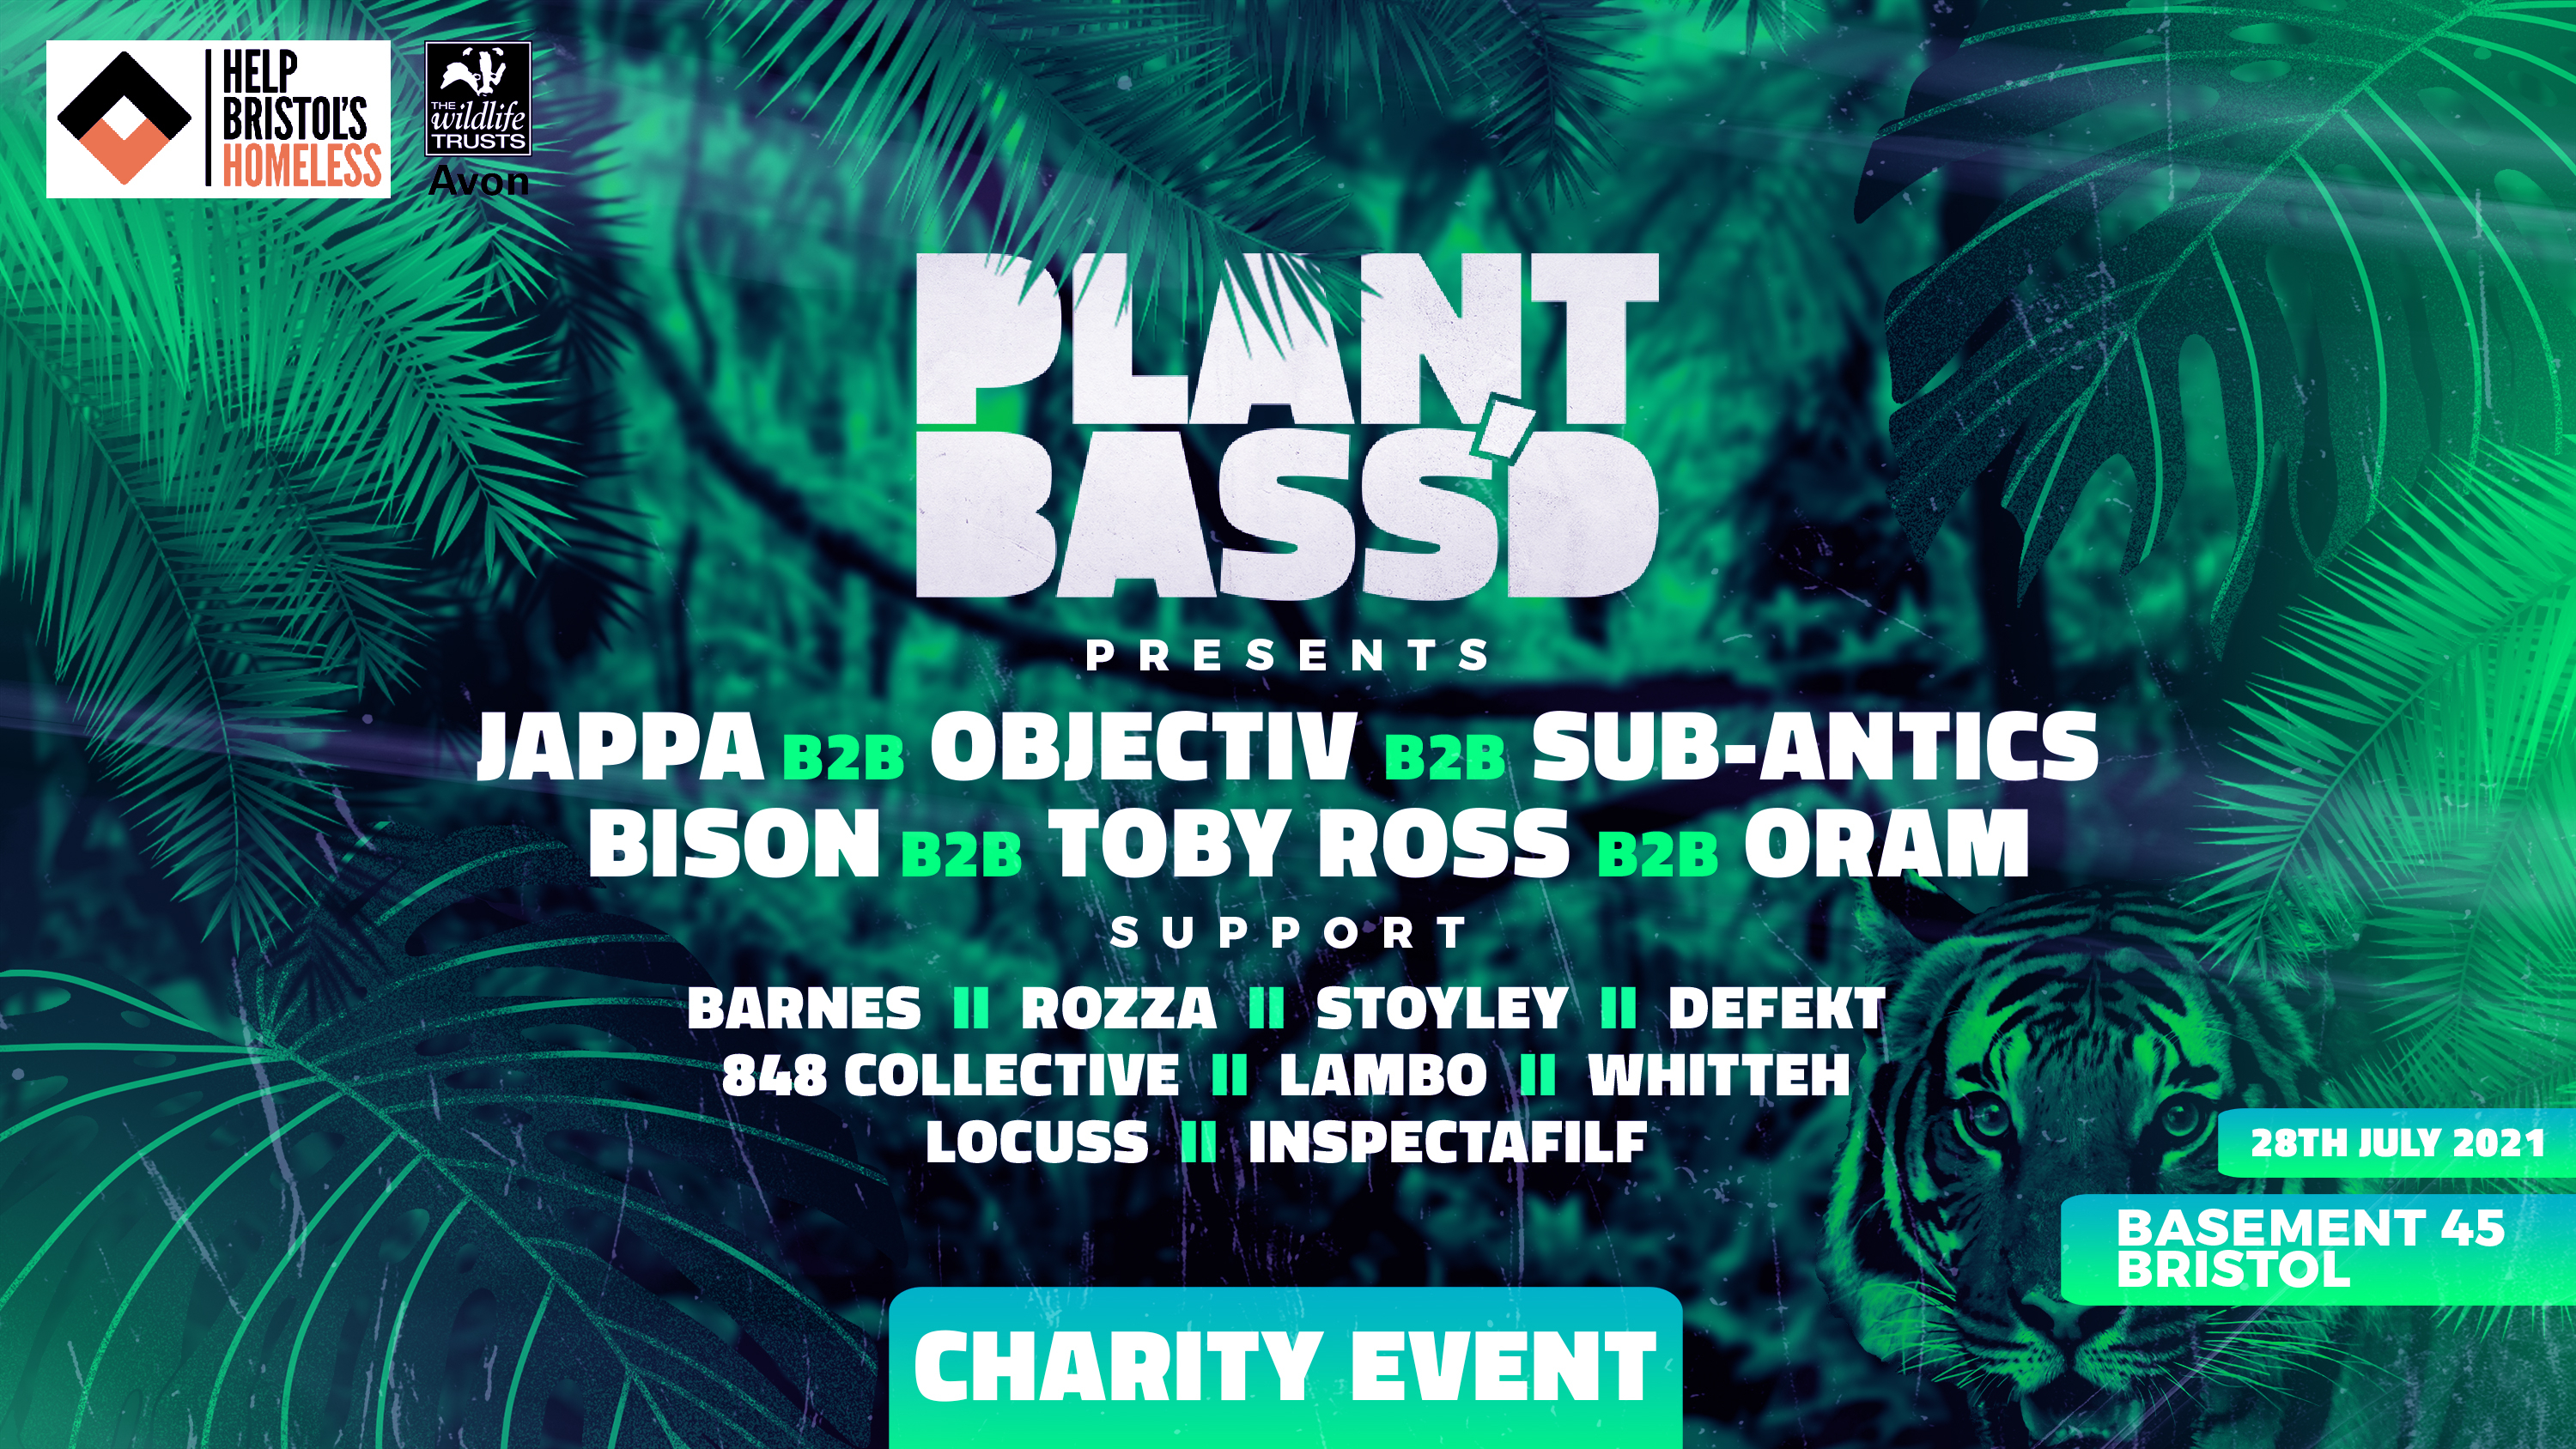 1336363_1_rave-it-up-presents-plant-bassd-events-_eflyer